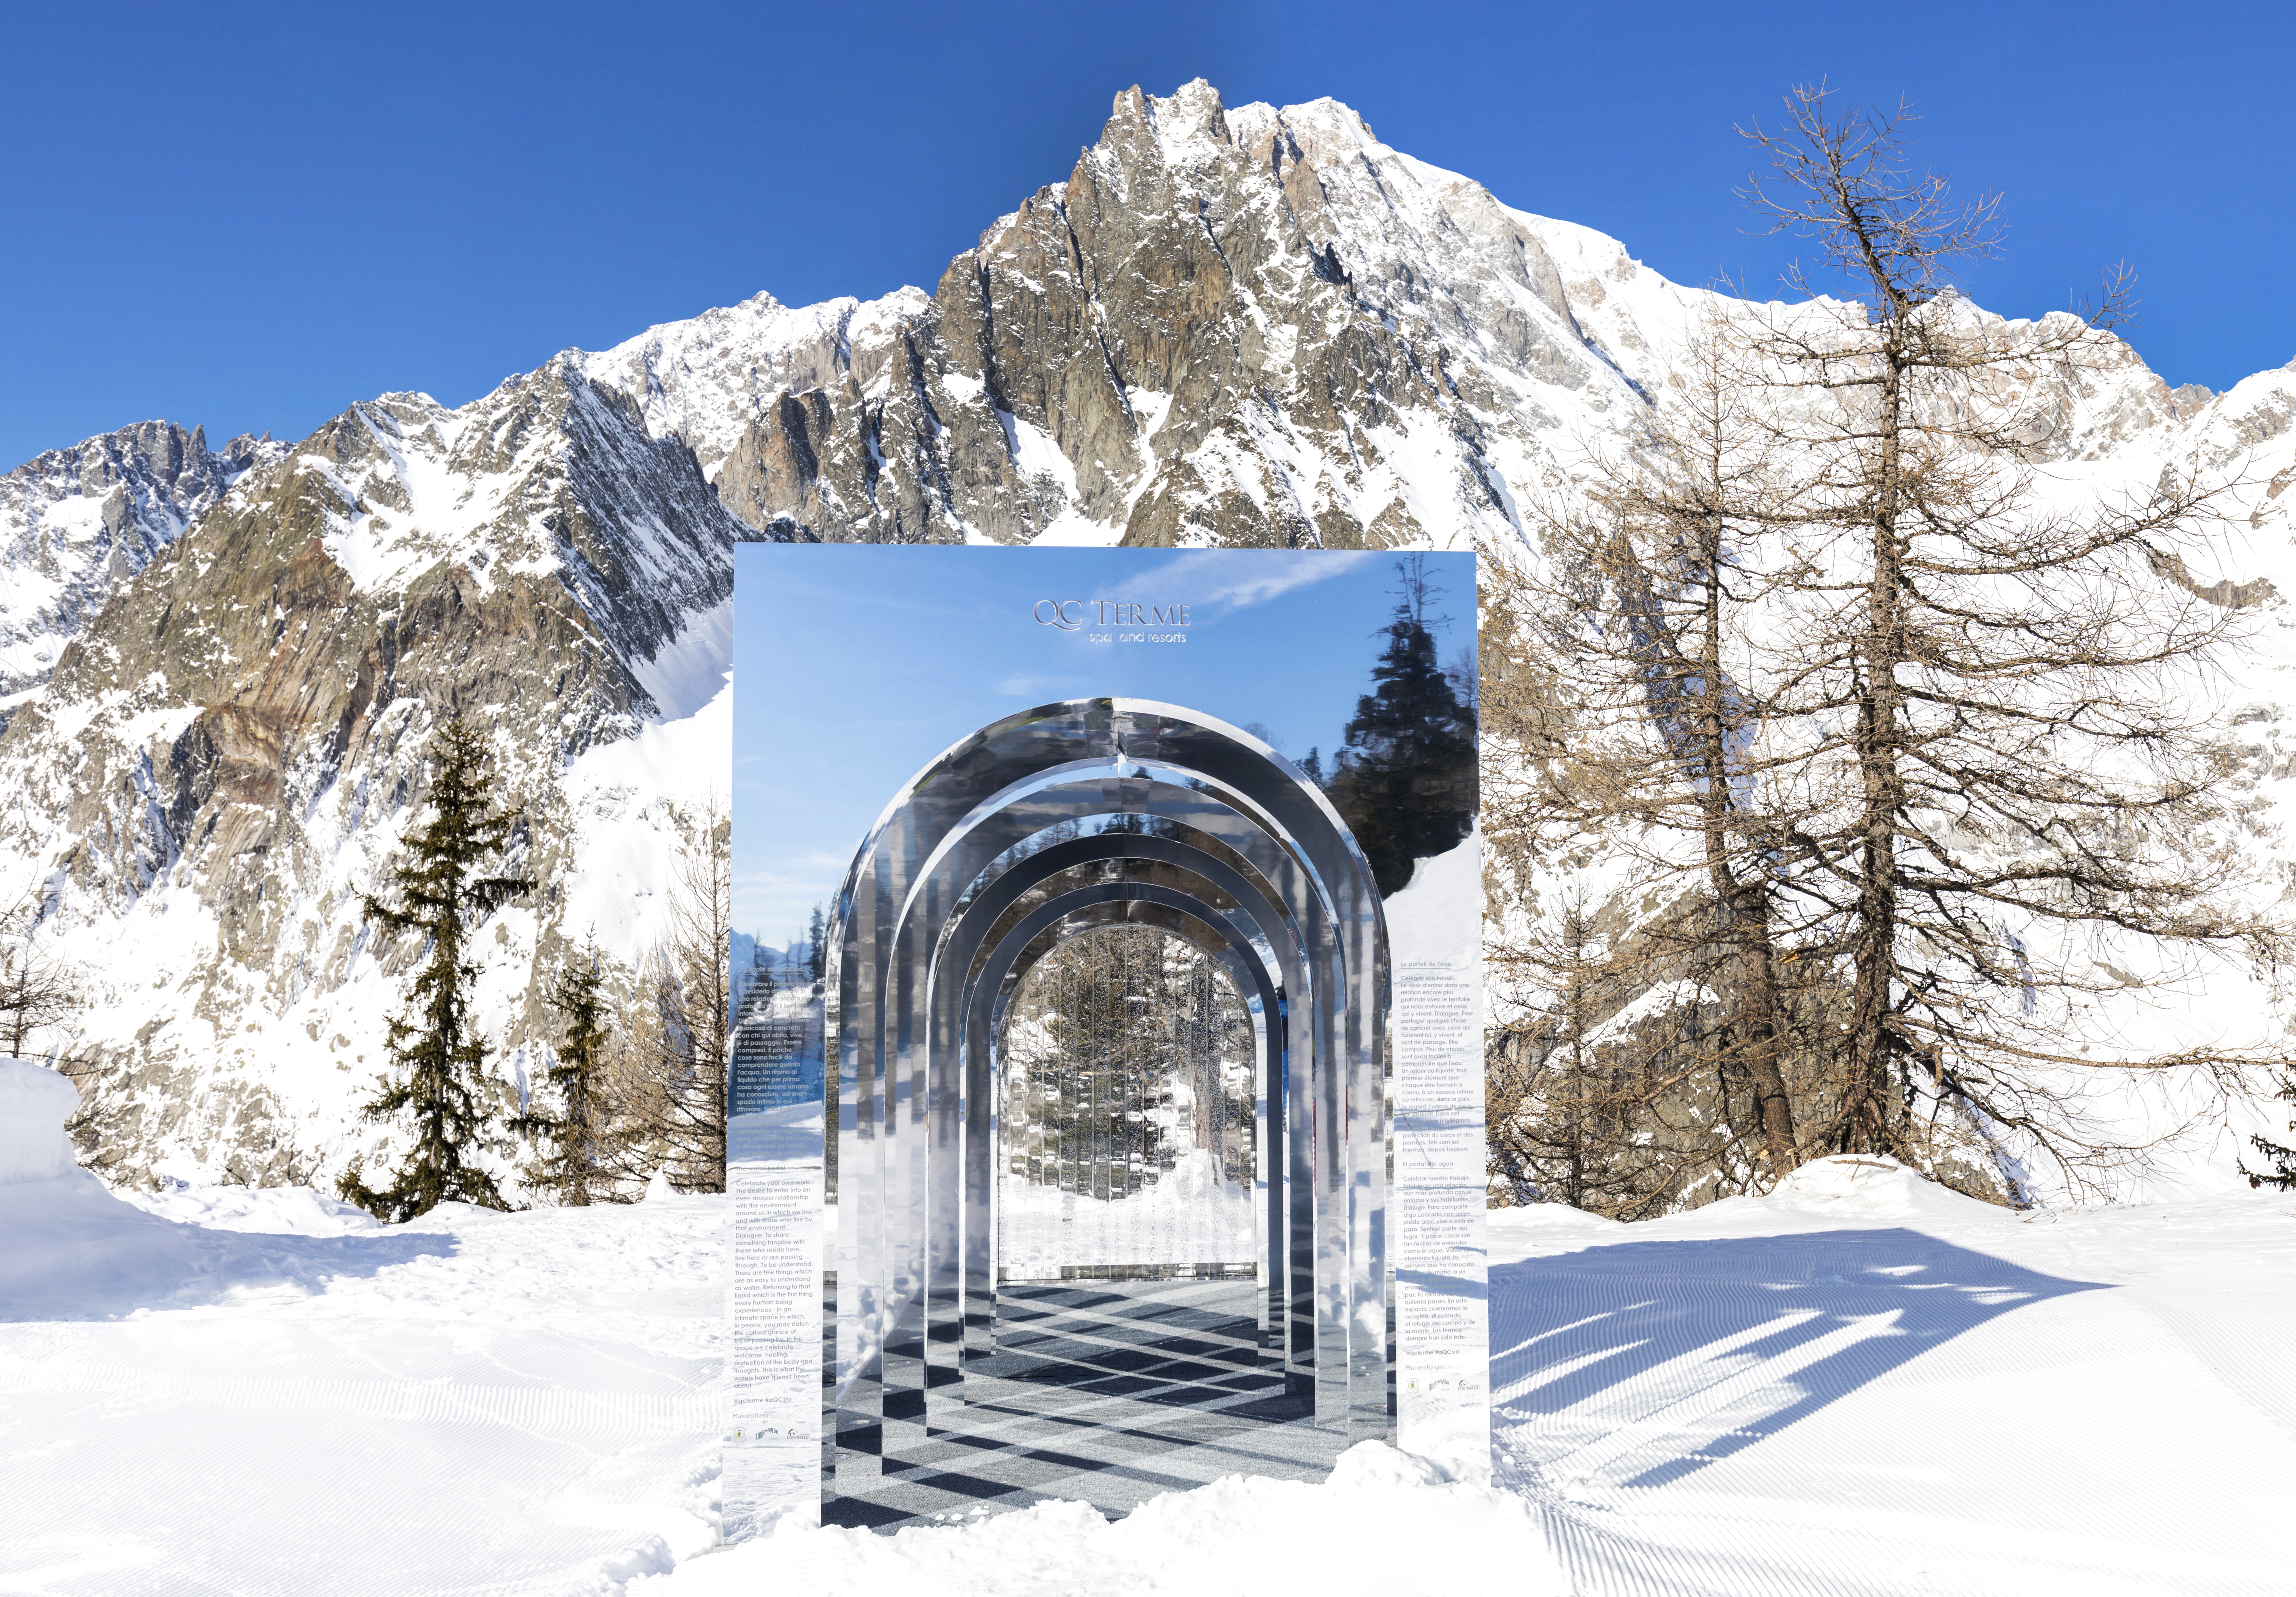 QC Terme il portale dell'aQCua l'opera d'arte più alta d'italia courmayeur mont blanc ilaria rebecchi matteo ragni designer italiano snow art montagna italiana creativity stories & news notizie creative arte italiana italiani italians designer italiani made in italy piste da sci valle d'aosta